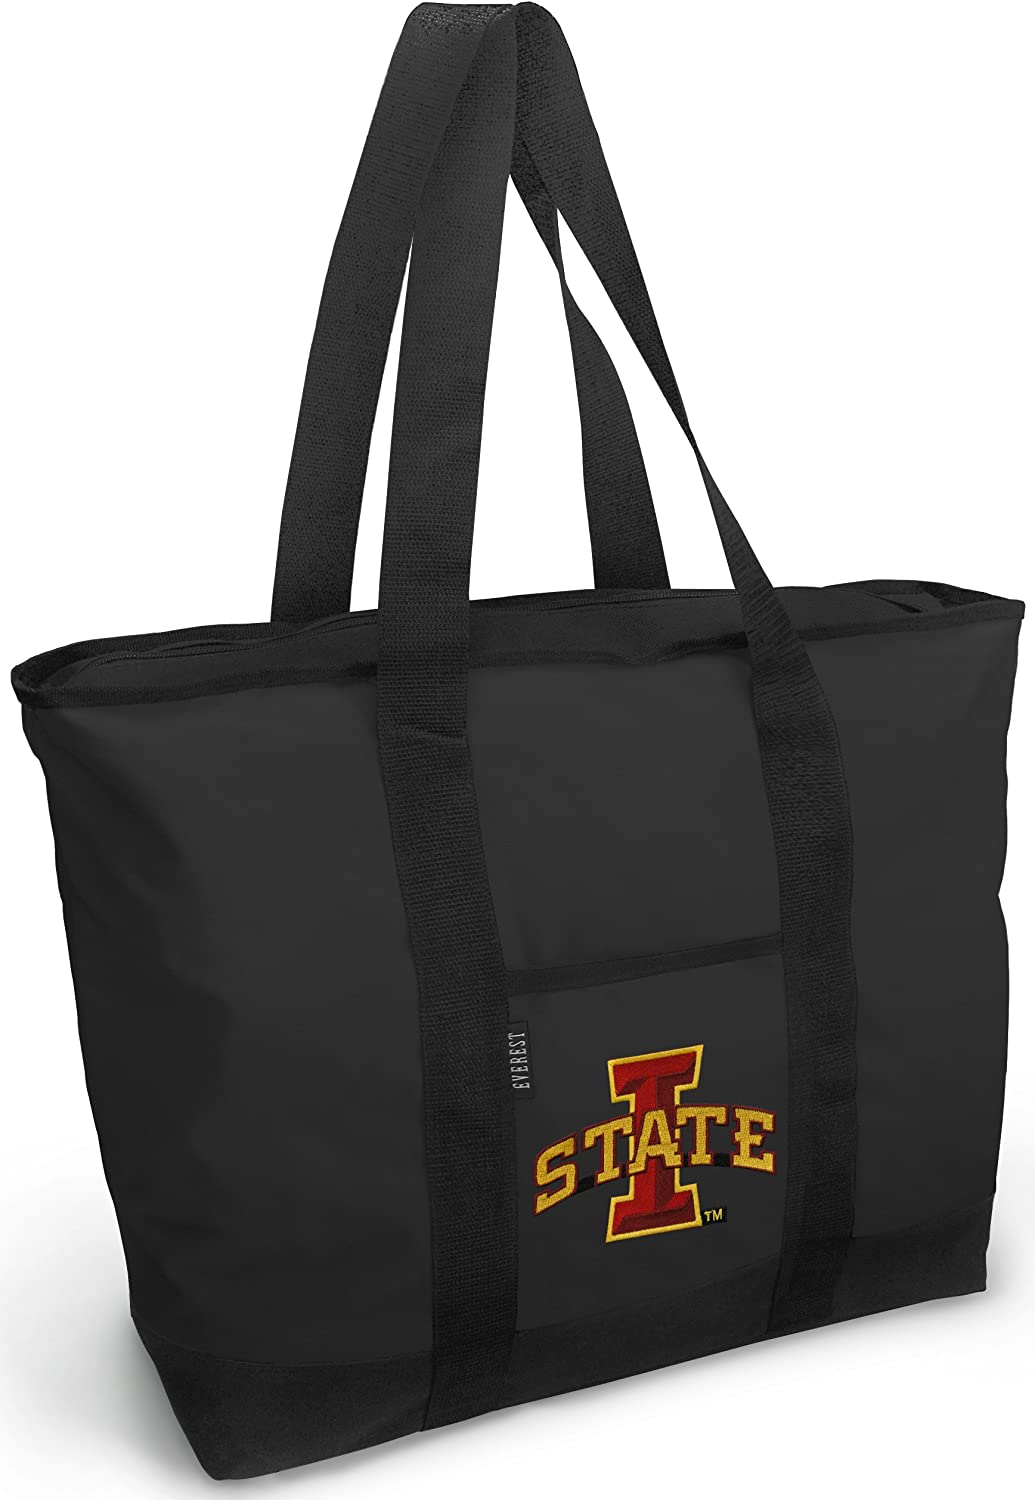 Broad Bay Iowa State Tote Bag Best ISU Cyclones Totes Shopping Travel or Everyday